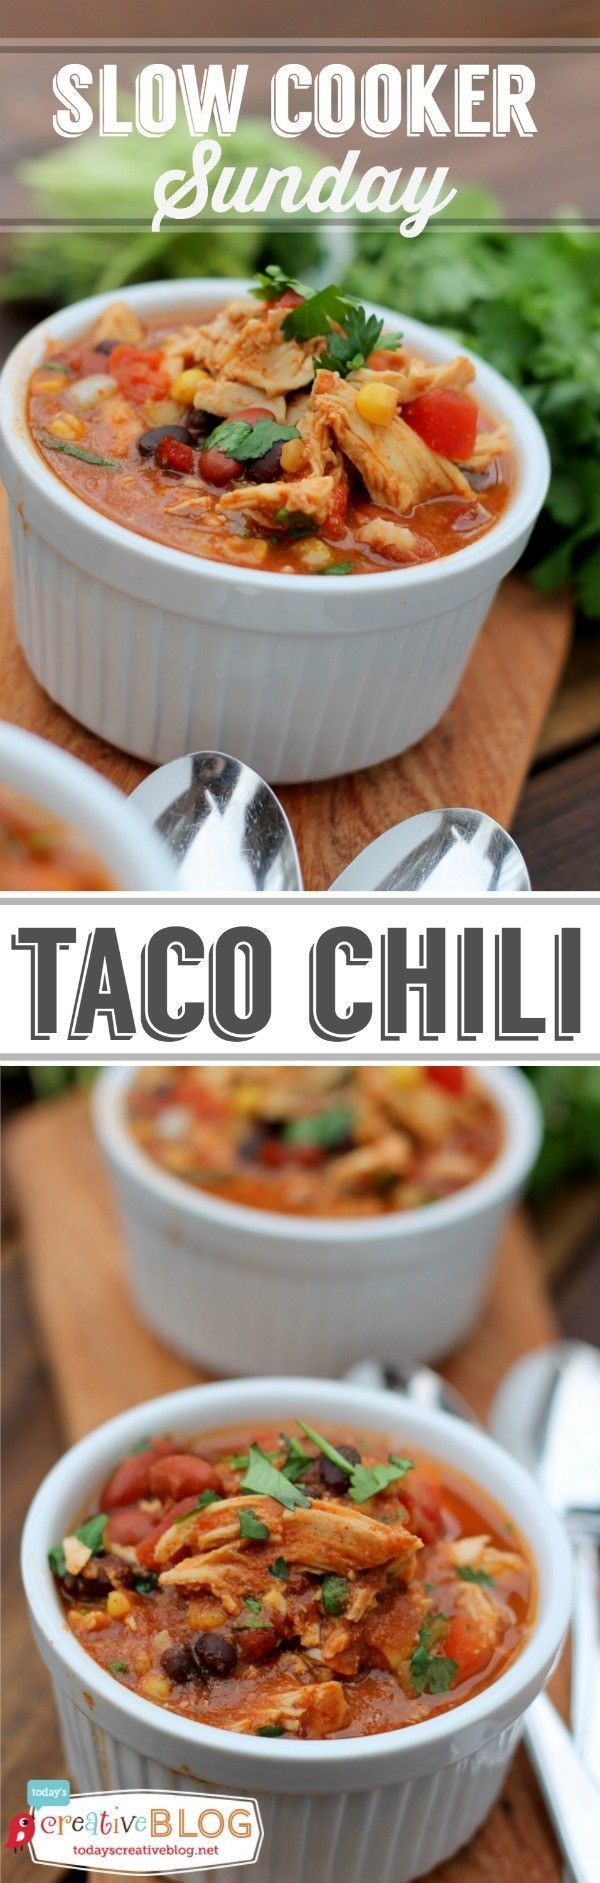 Slow cooker tacos, Taco chili and Chili recipes on Pinterest